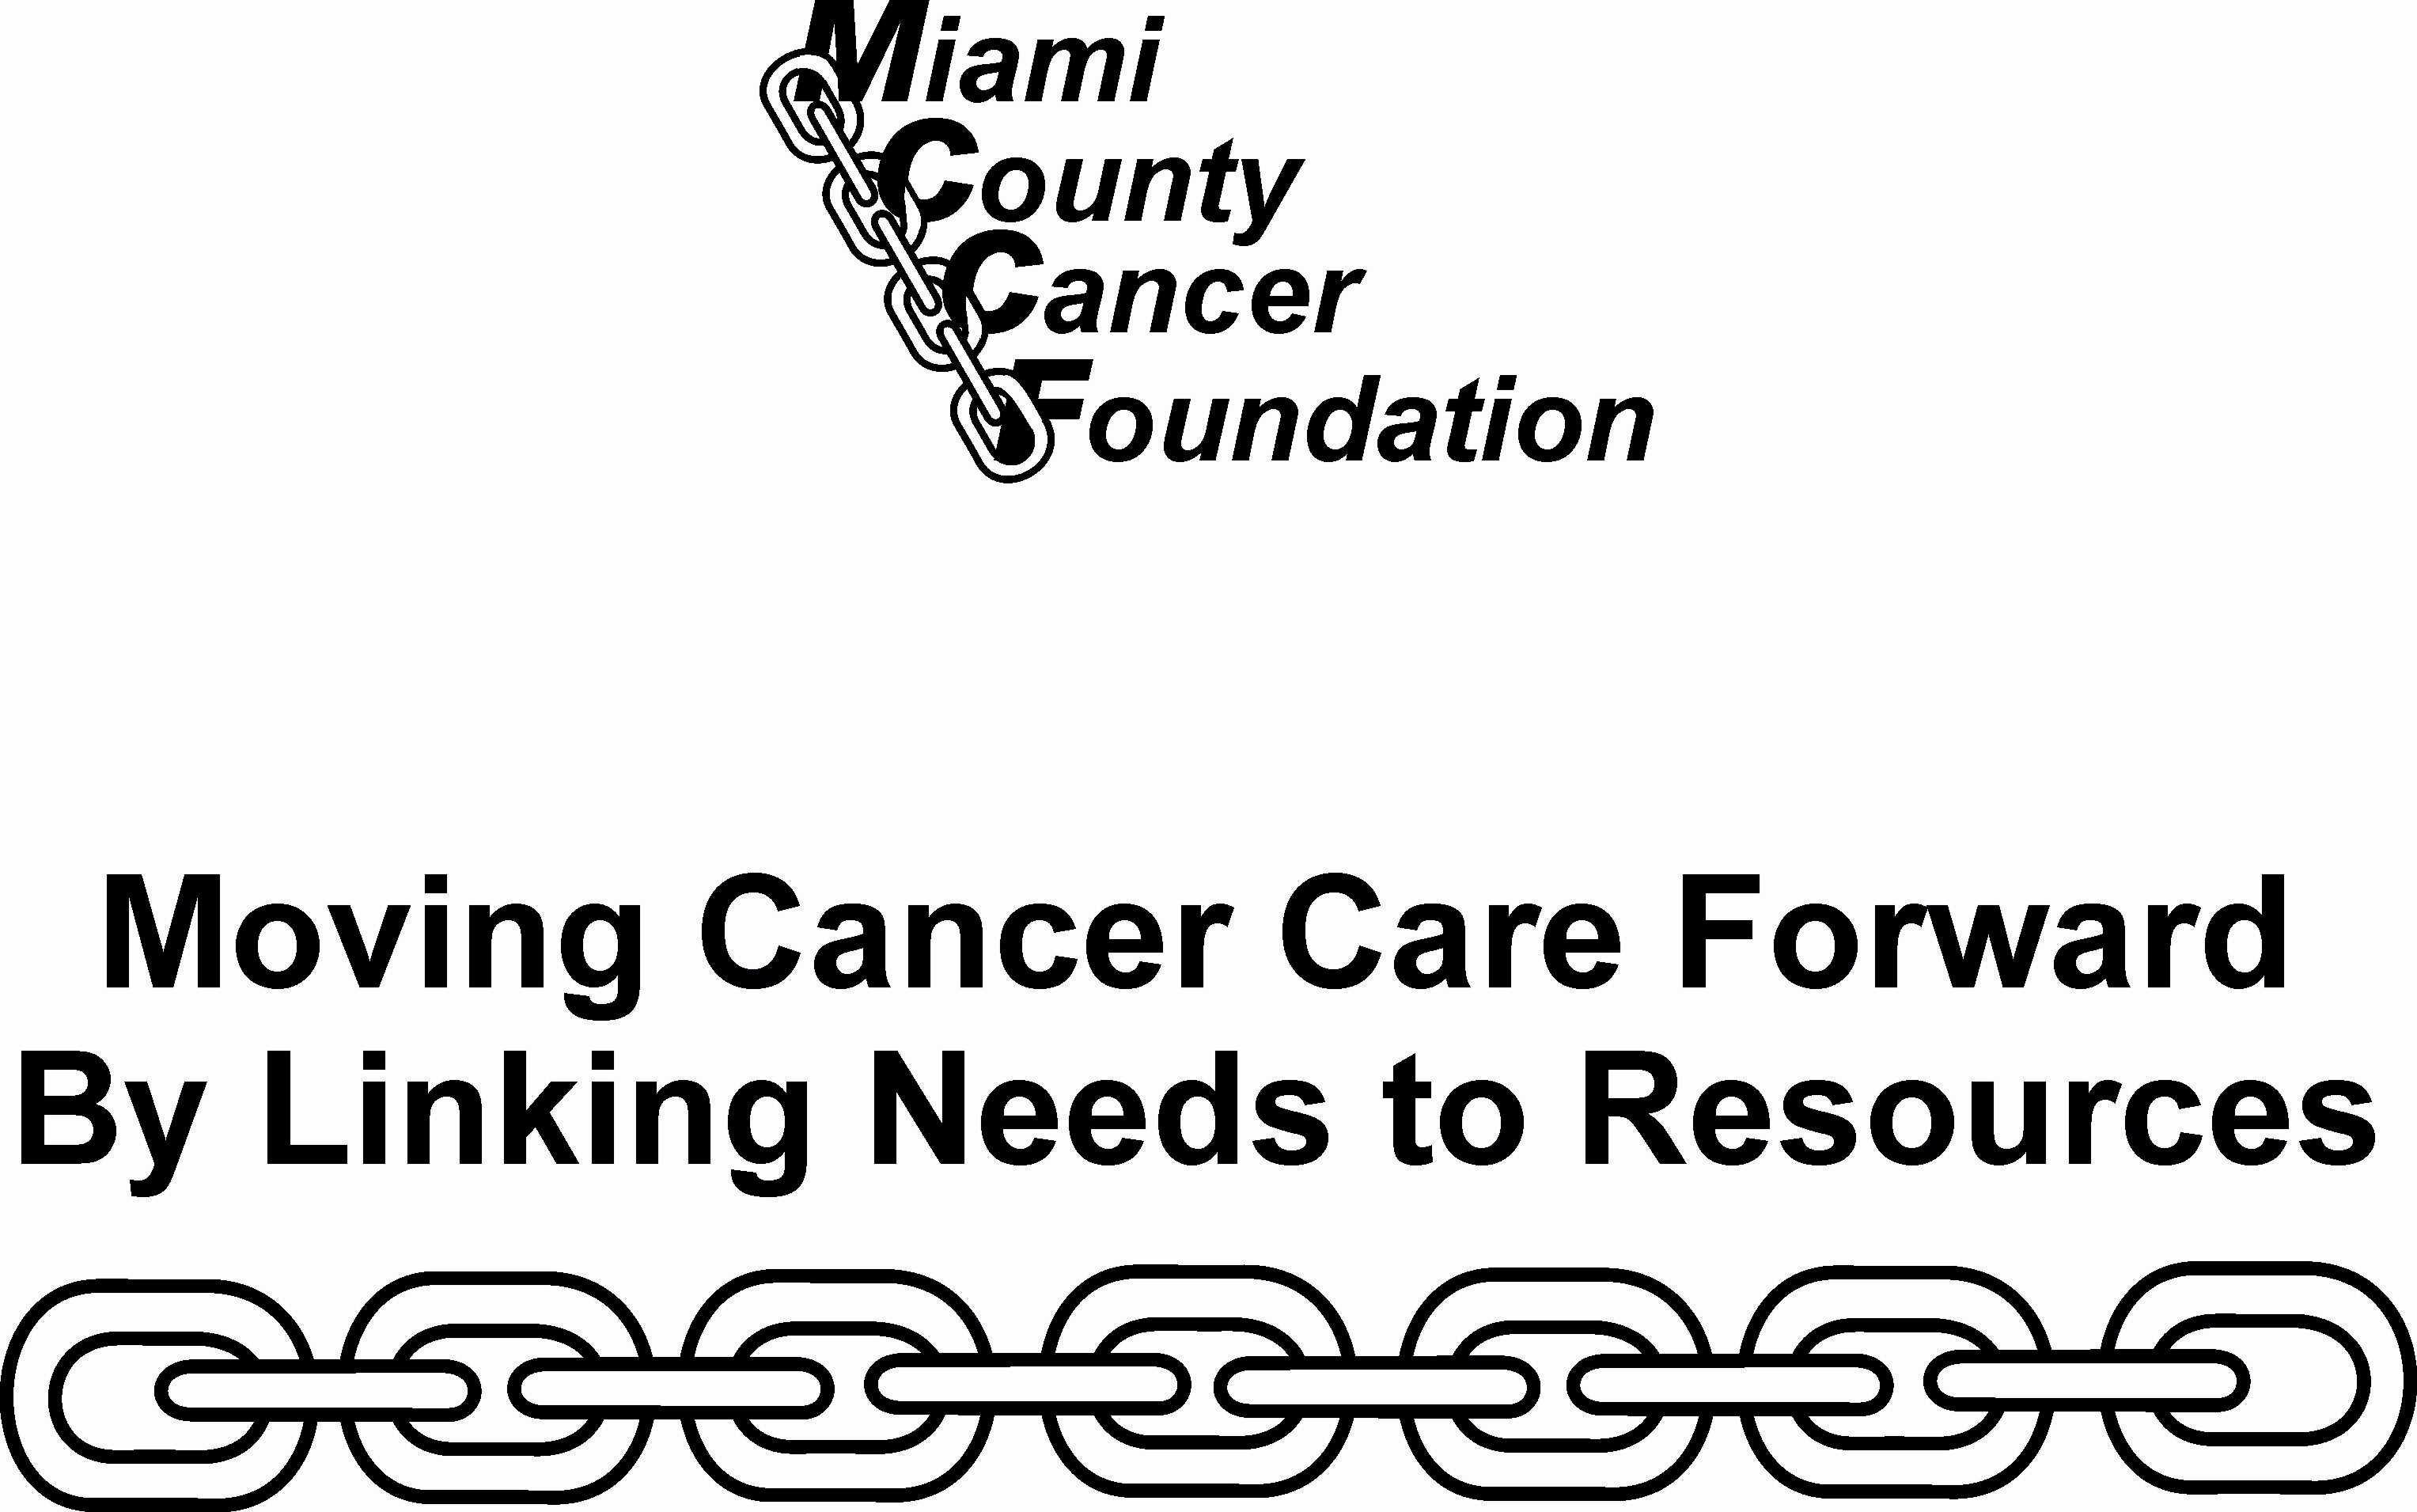 Miami County Cancer Foundation